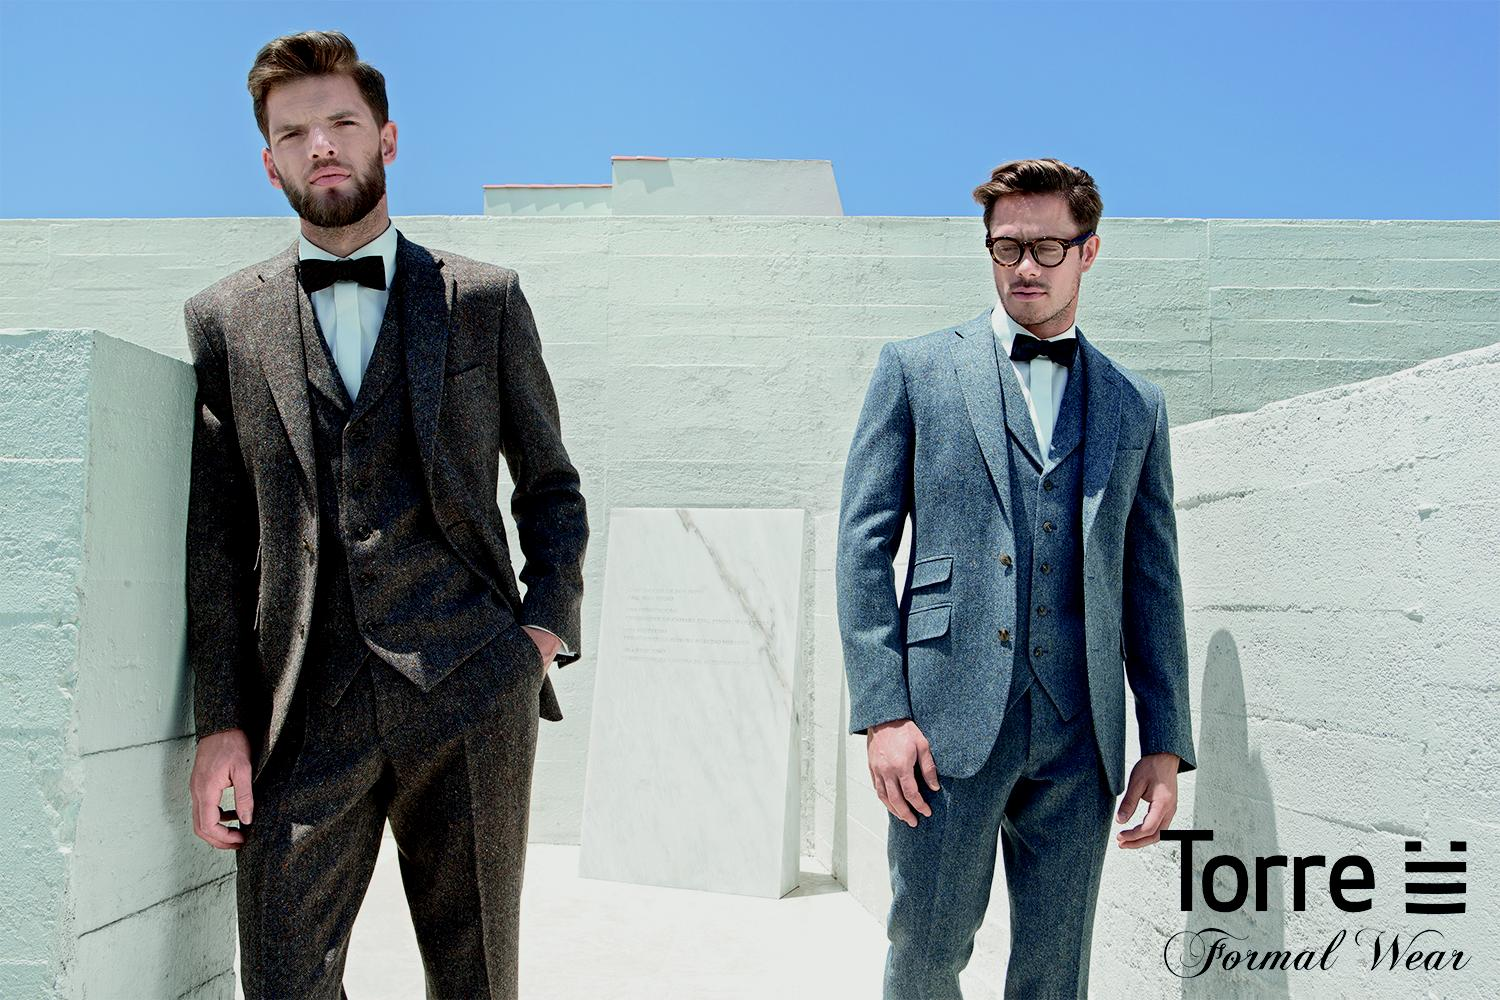 Top five menswear trends from Torre - Collections - Bridal Buyer